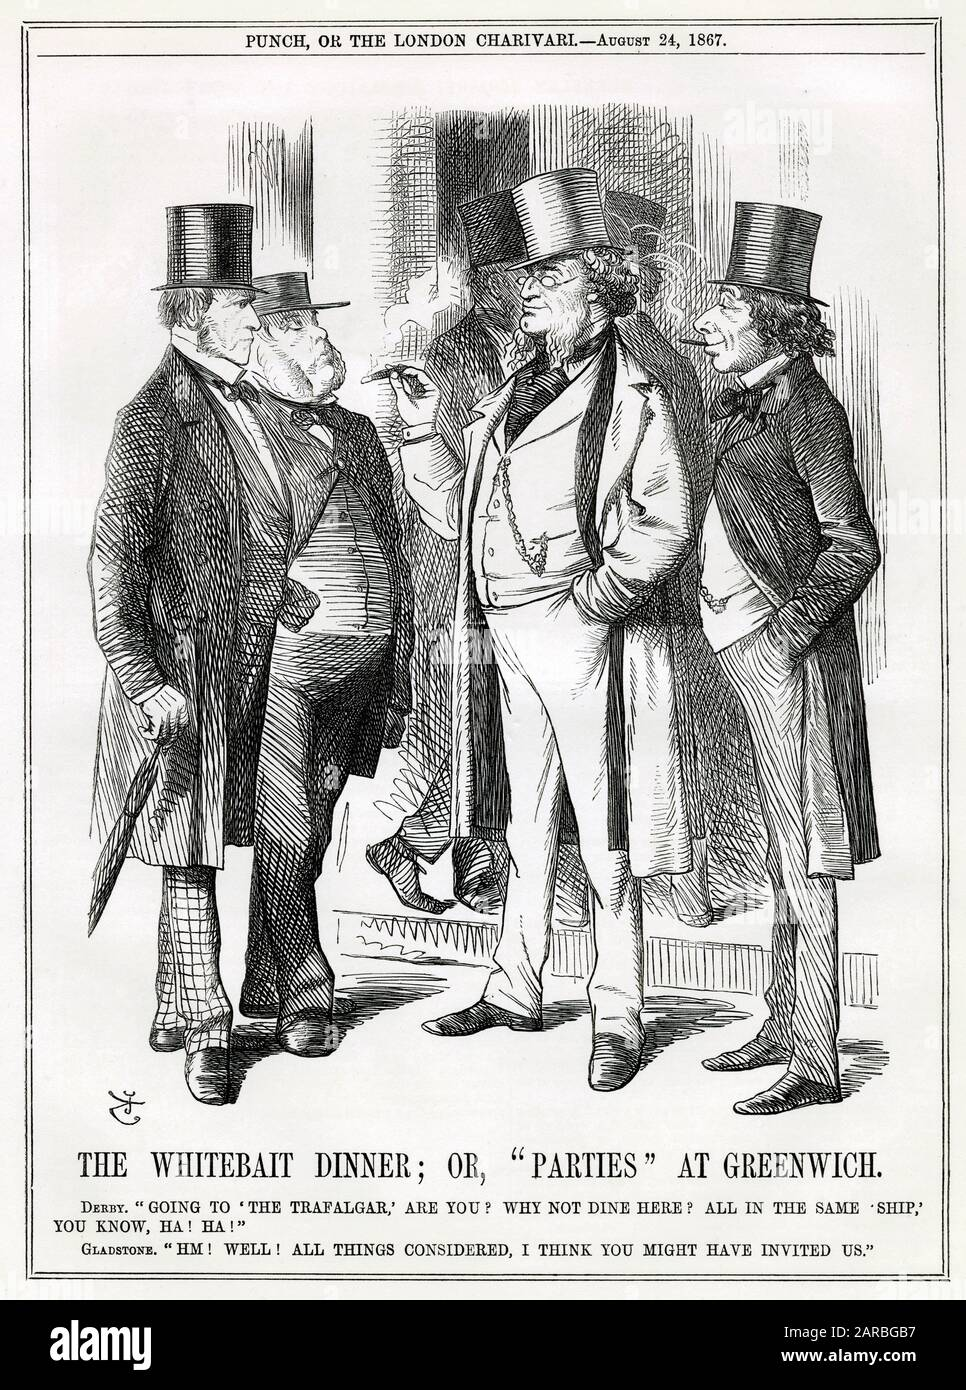 Cartoon, The Whitebait Dinner; or, Parties at Greenwich -- rival politicians encounter each other at the traditional summertime Whitebait Dinner in Greenwich, SE London. Lord Derby and Benjamin Disraeli are looking pleased with themselves after their success with the Reform Bill; William Gladstone and John Bright are looking less happy.      Date: 1867 Stock Photo